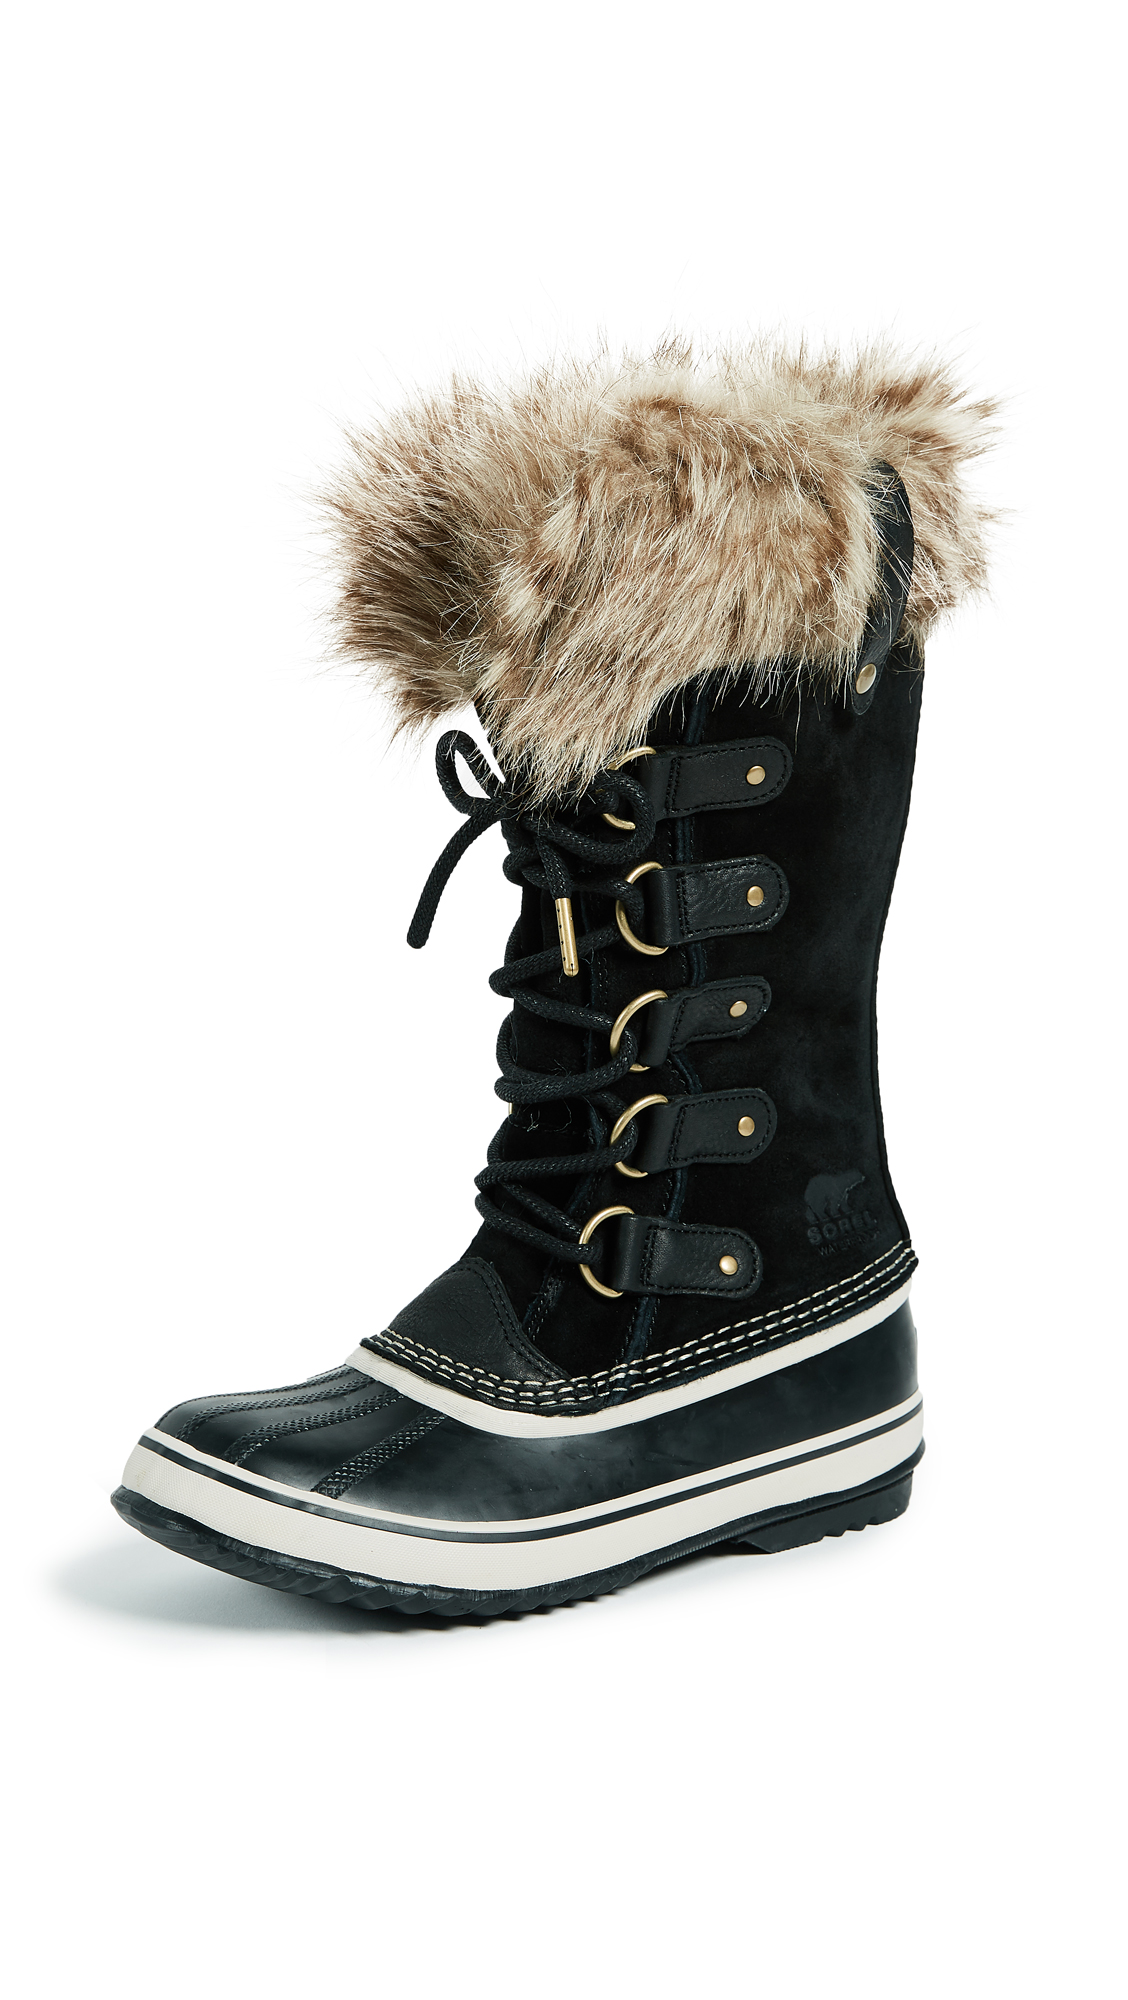 Sorel Joan of Arctic Boots - Black/Stone